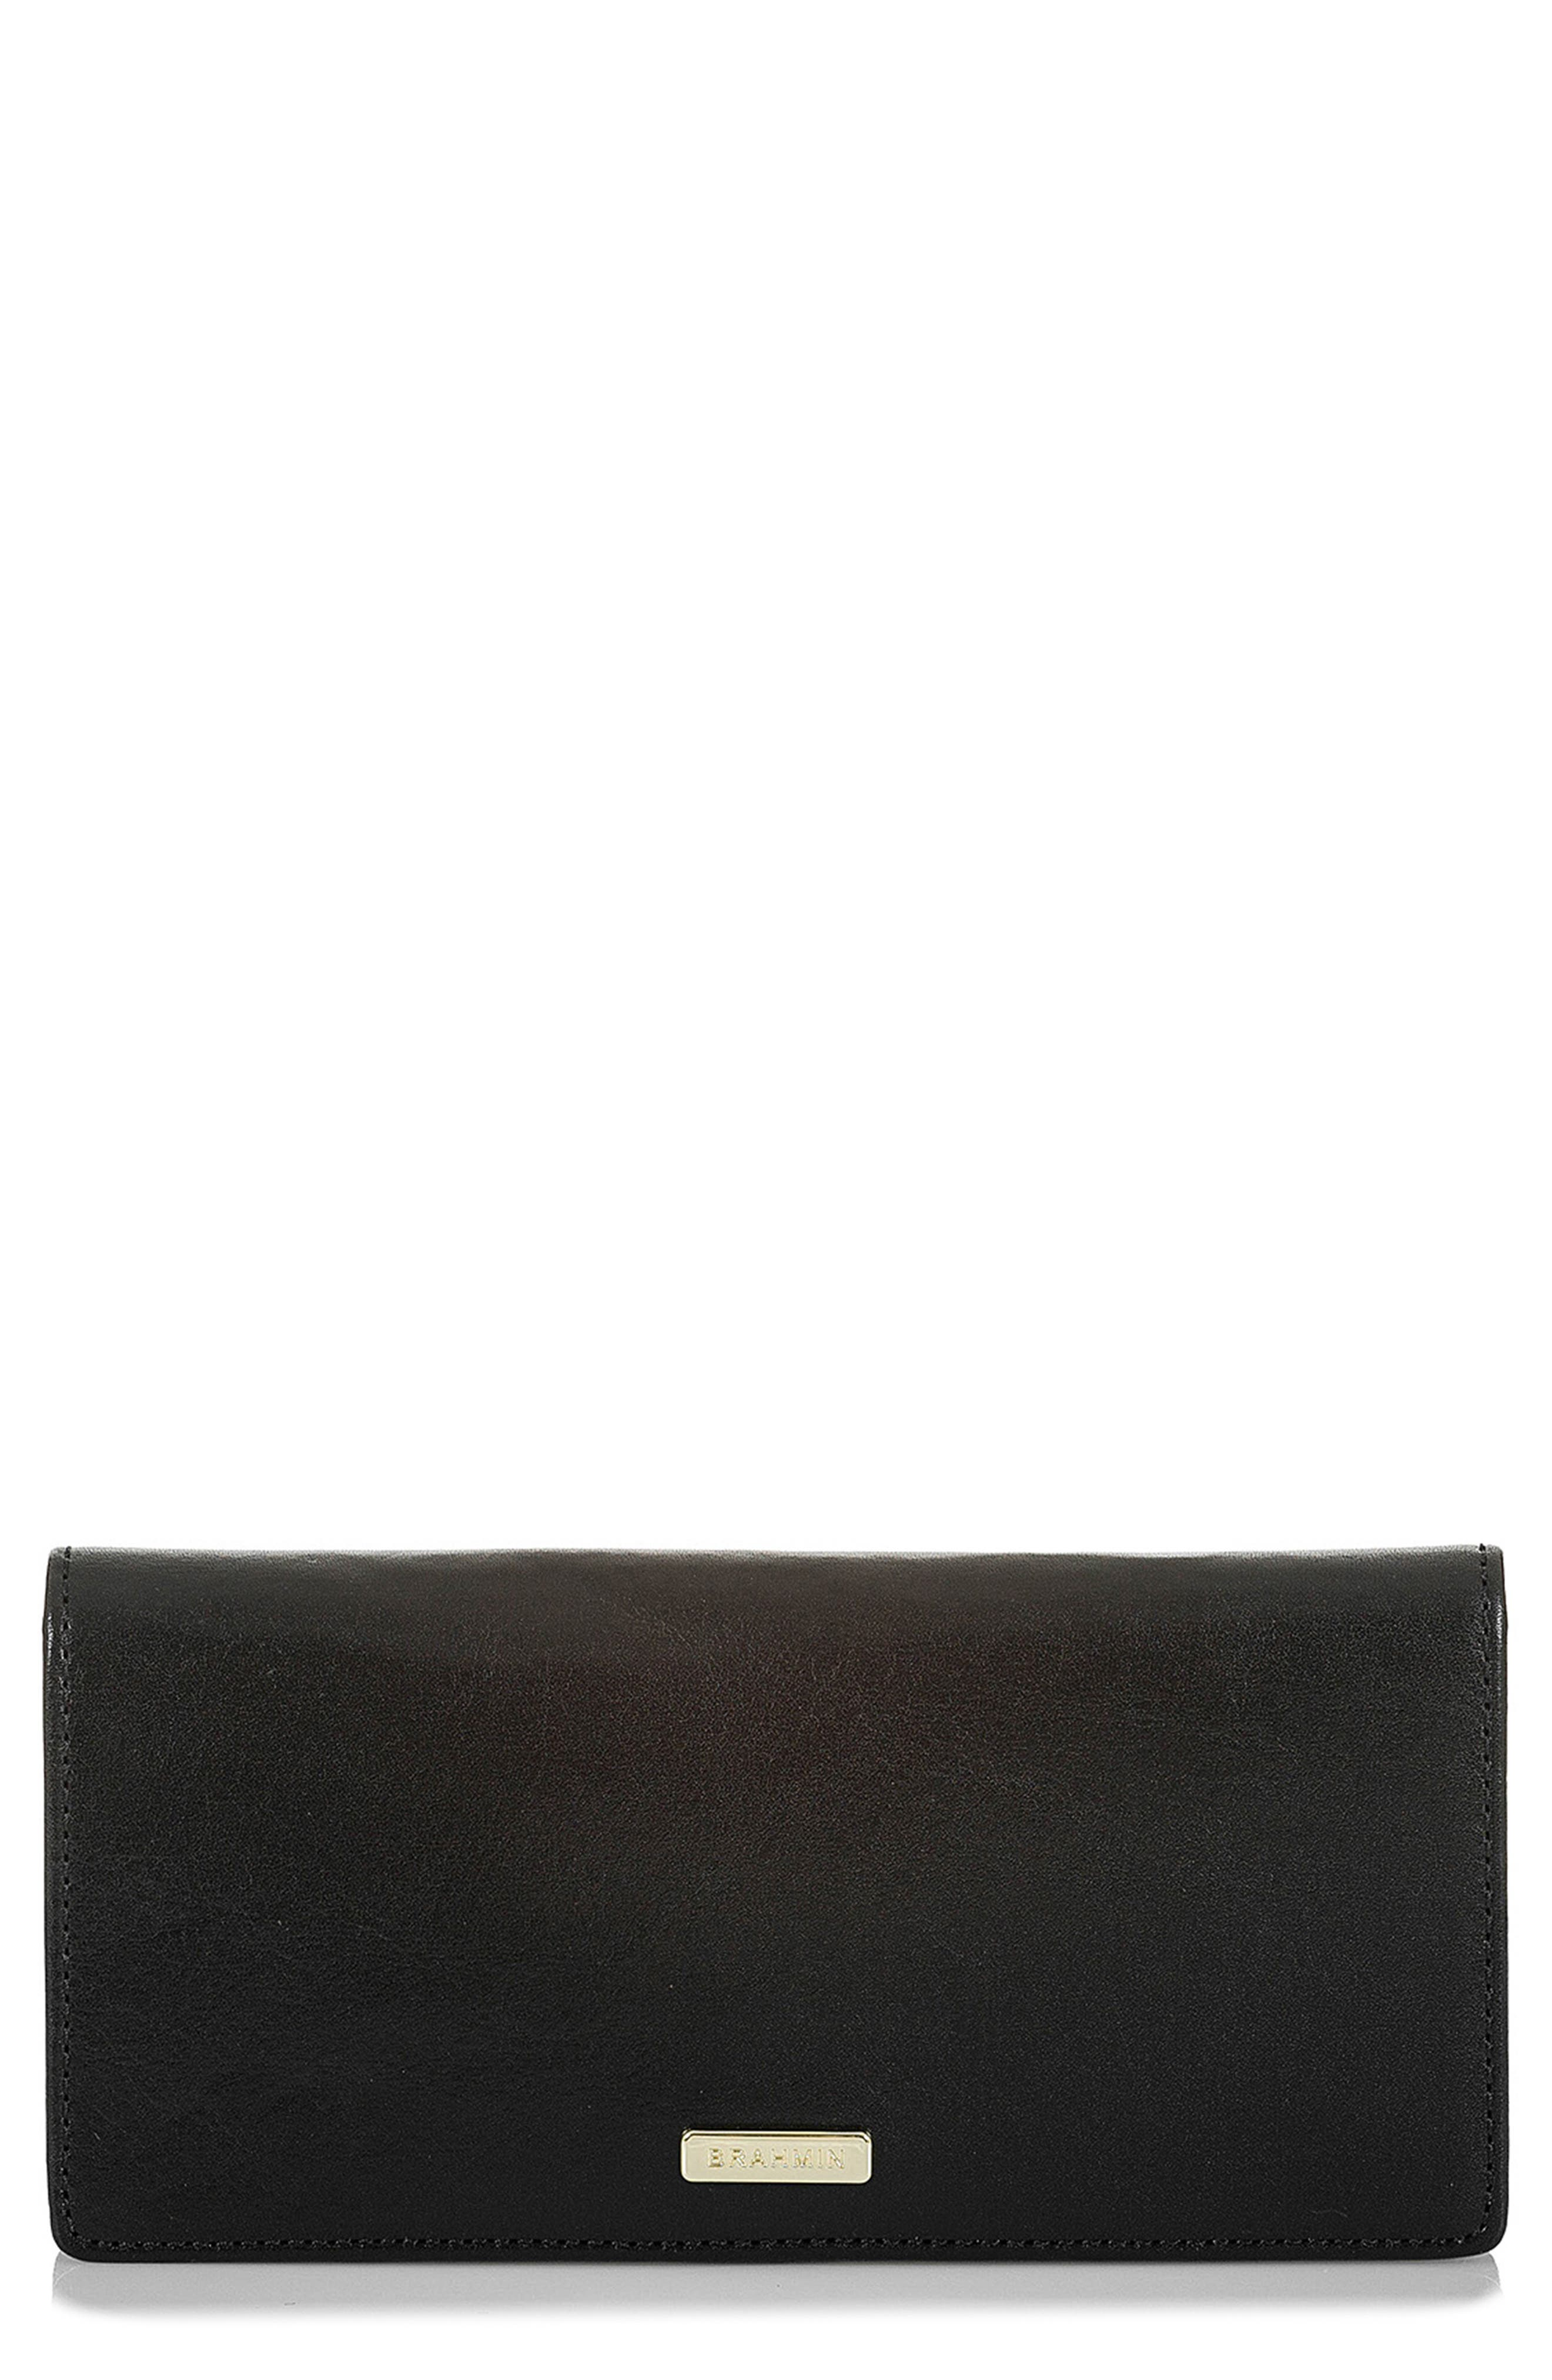 Ady Leather Wallet,                         Main,                         color, BLACK